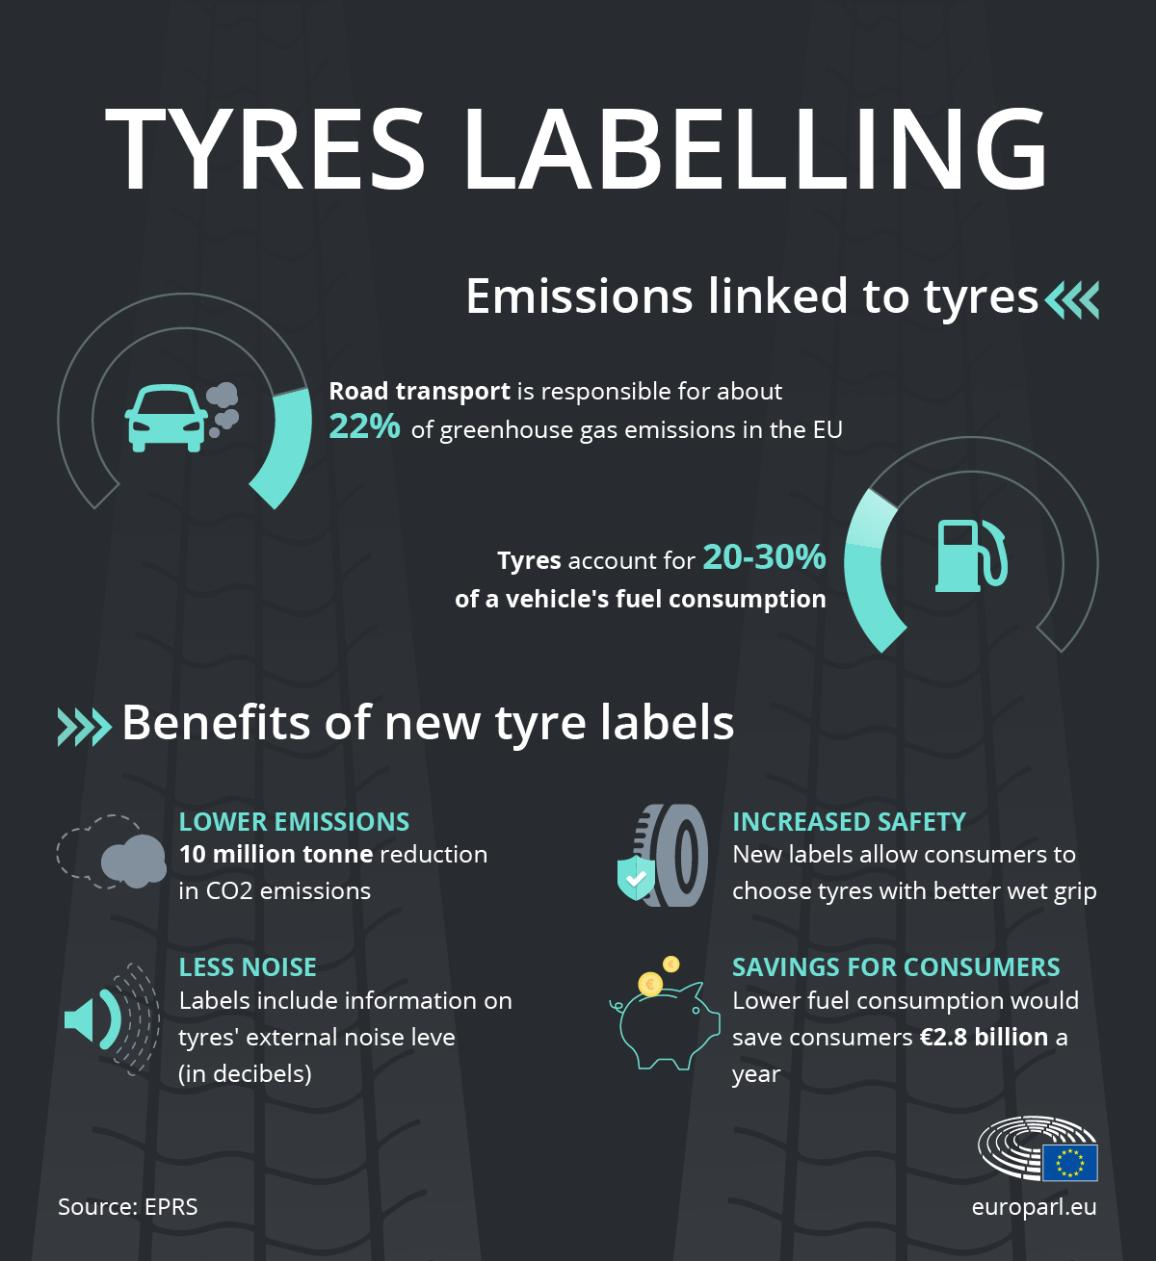 Infographic on tyres emissions in the EU and the benefits of the new EU tyre labels